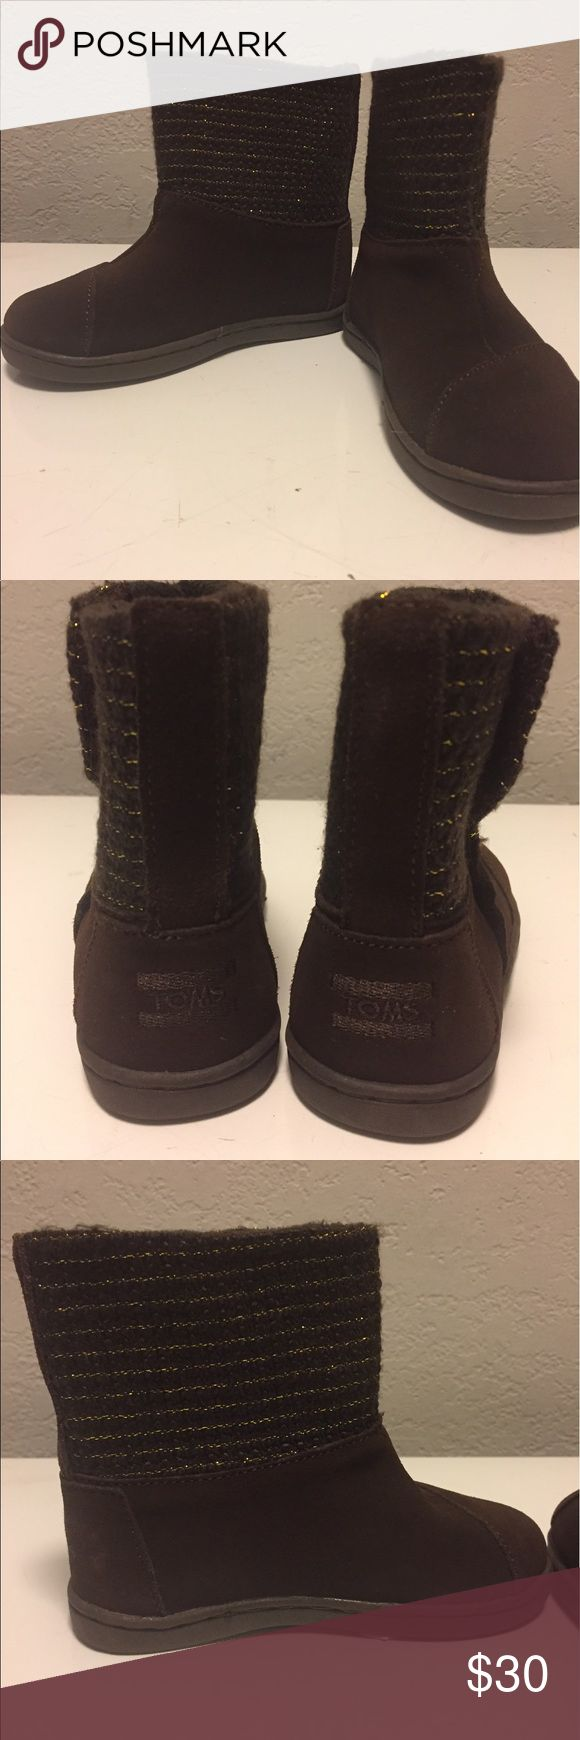 Girls Brown Toms Boots Brand new TOMS Shoes Boots